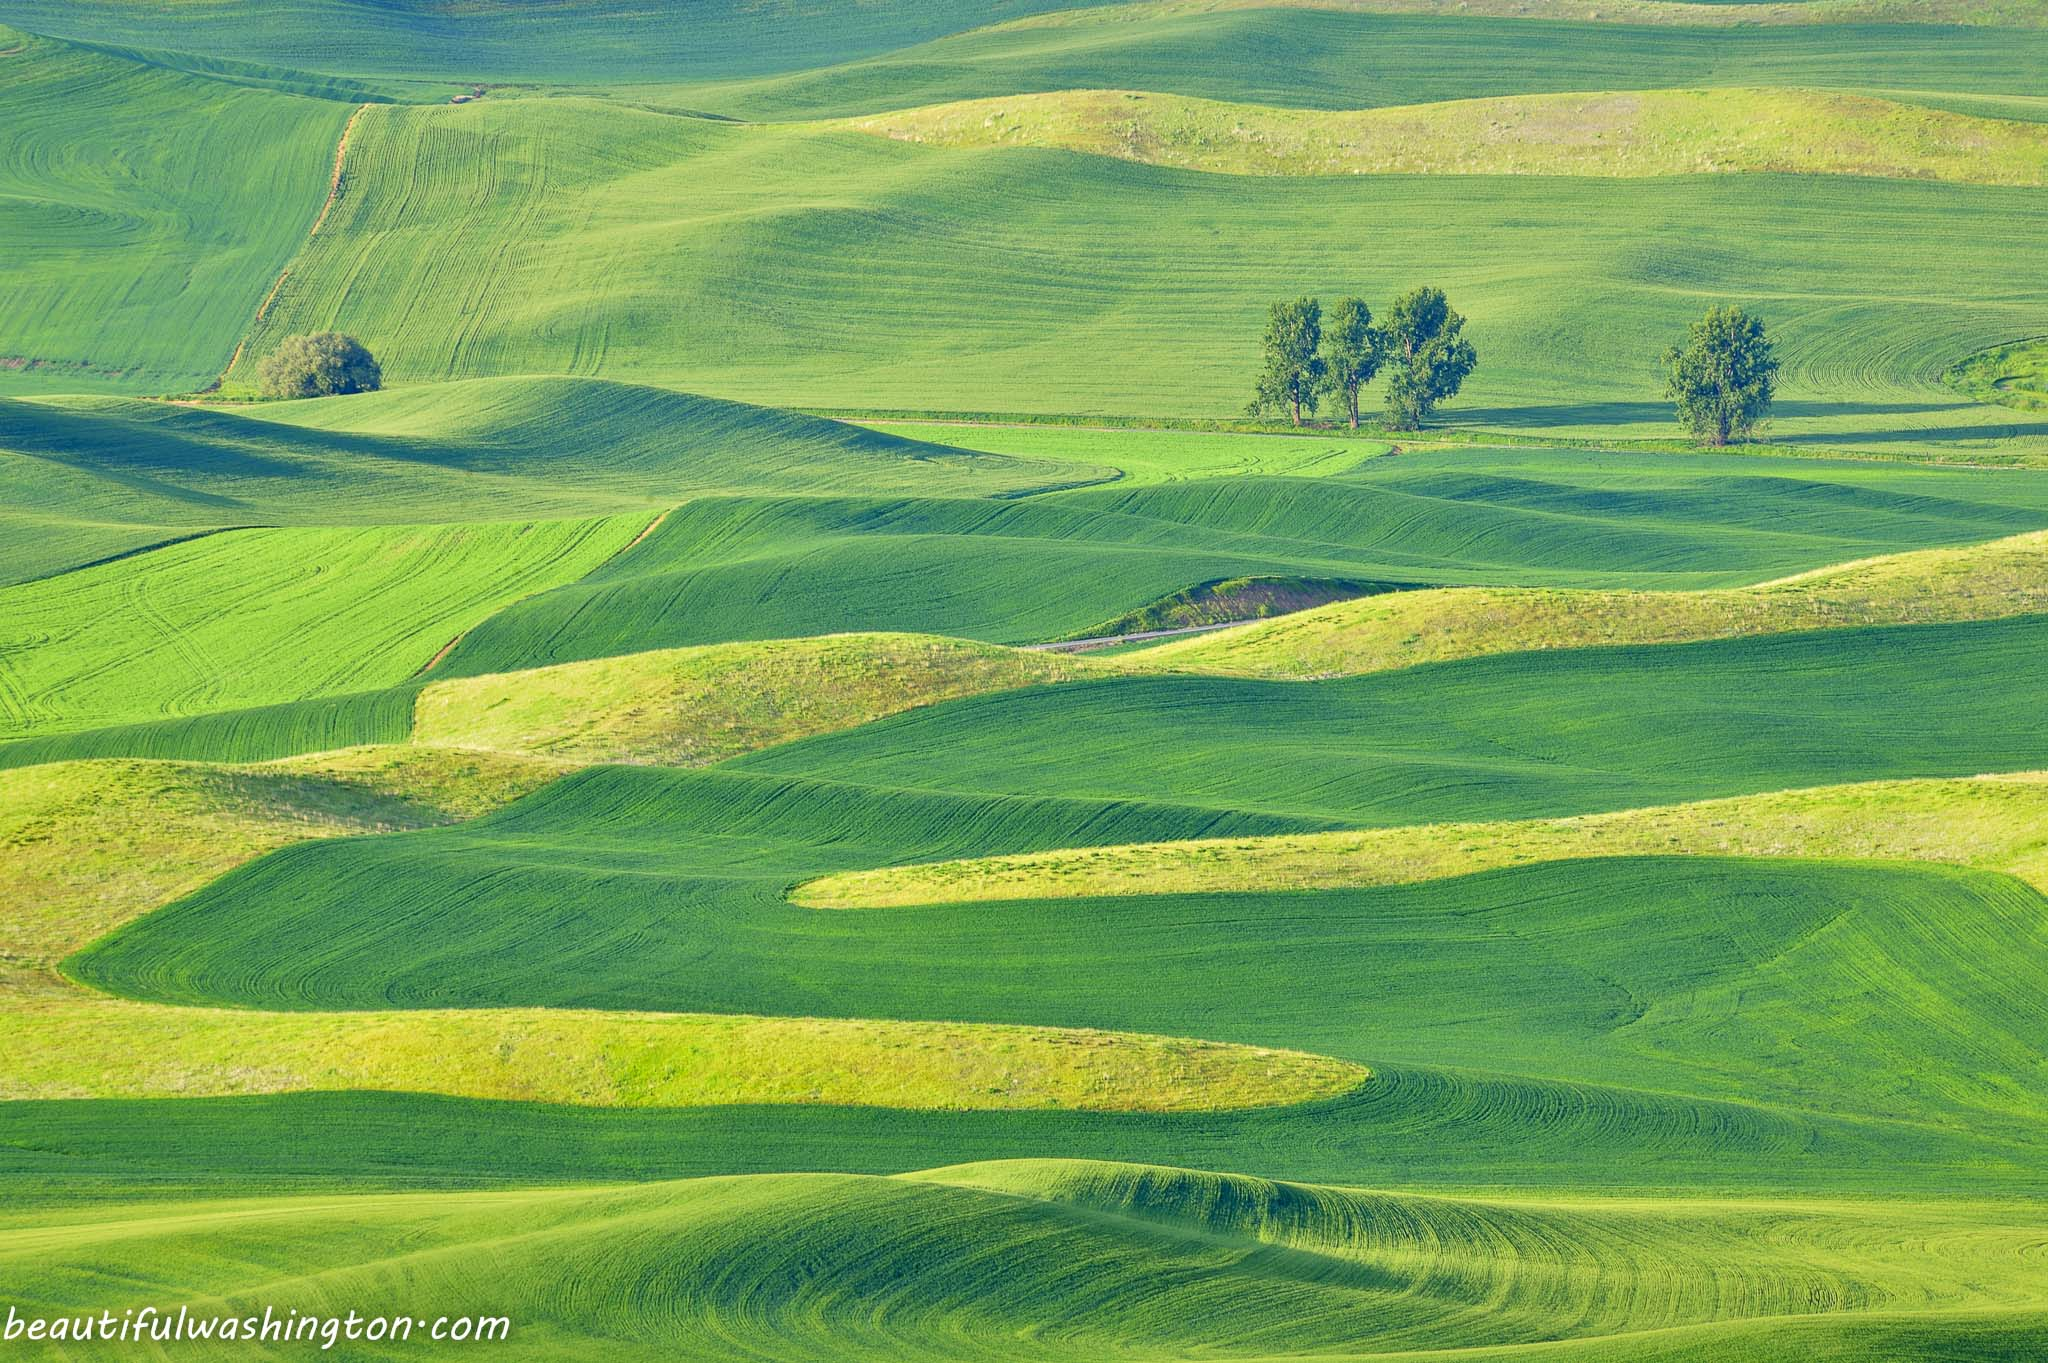 Palouse fields Carolina K Smith 02